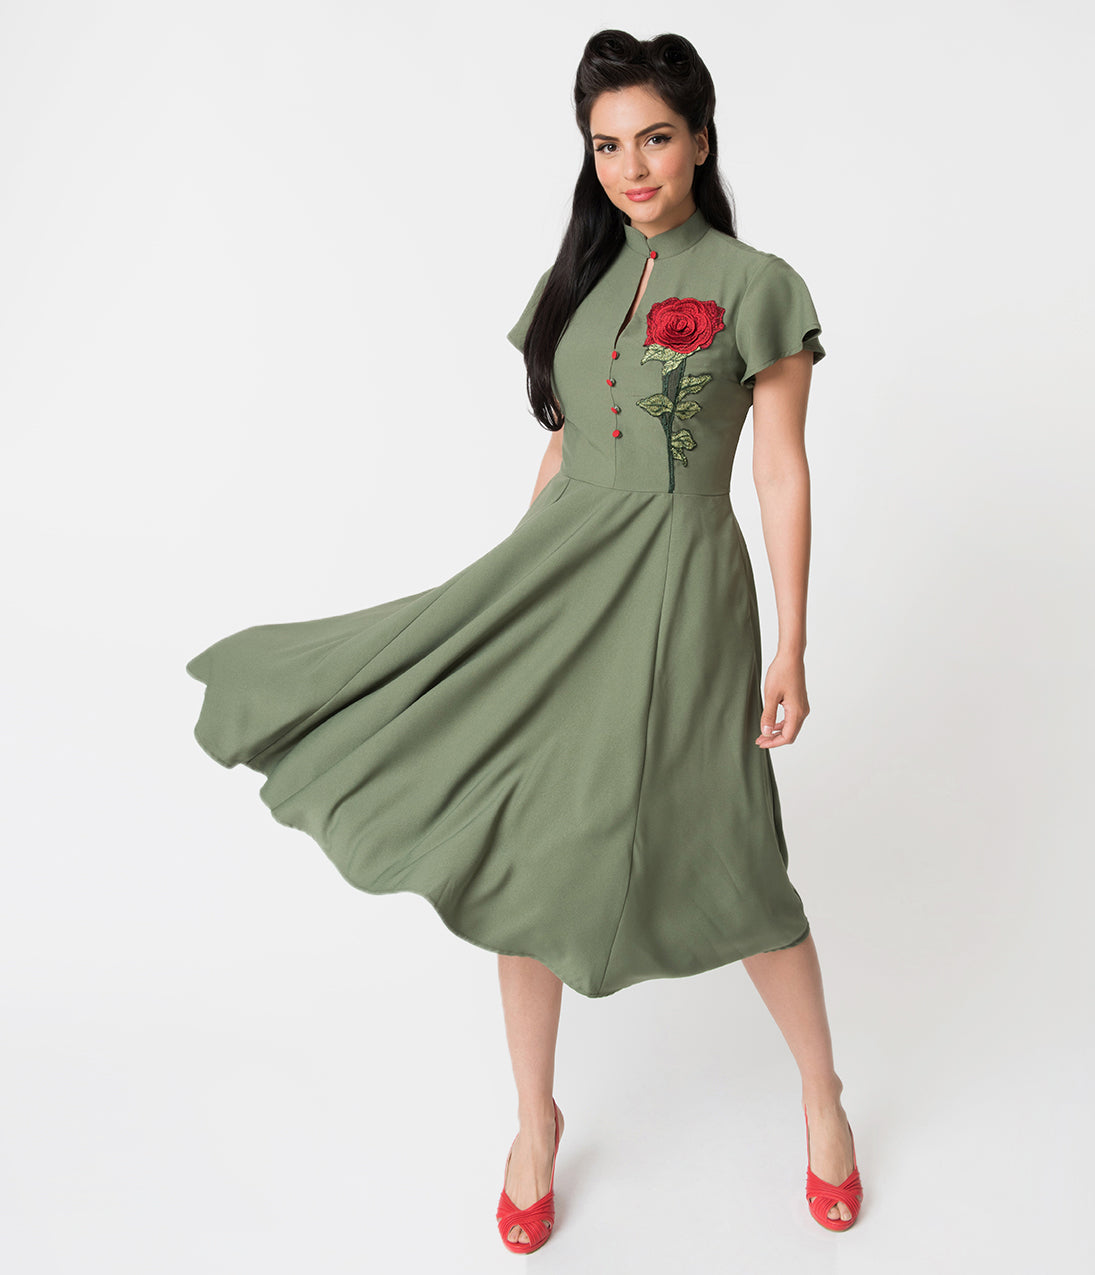 1950s Housewife Dress | 50s Day Dresses Unique Vintage 1950S Olive Green  Embroidered Red Rose Baltimore Swing Dress $74.00 AT vintagedancer.com